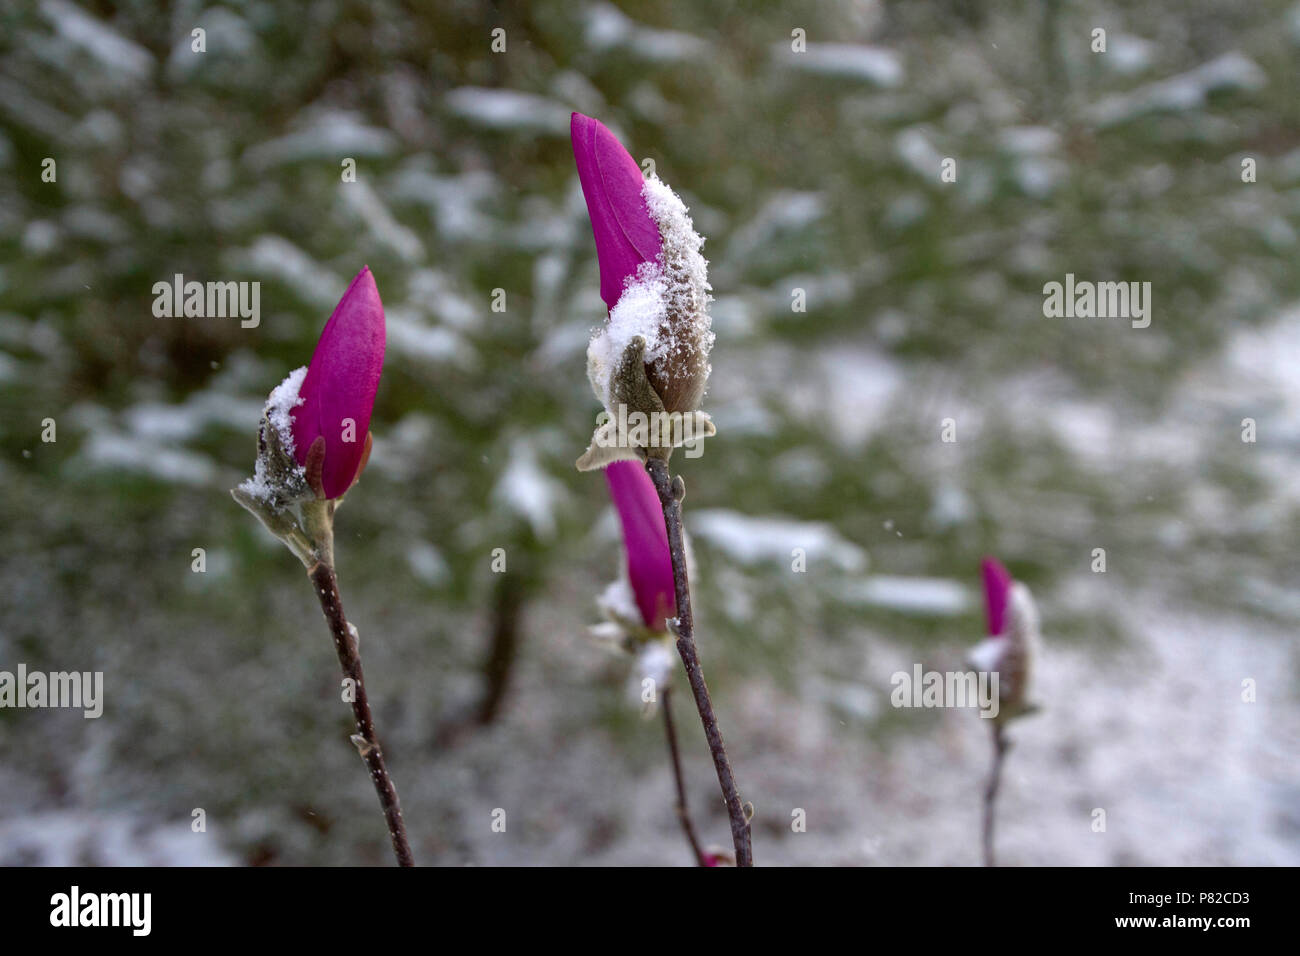 Brightly colorful, long stemmed flowers that are tightly furled and covered in snow in early spring Stock Photo